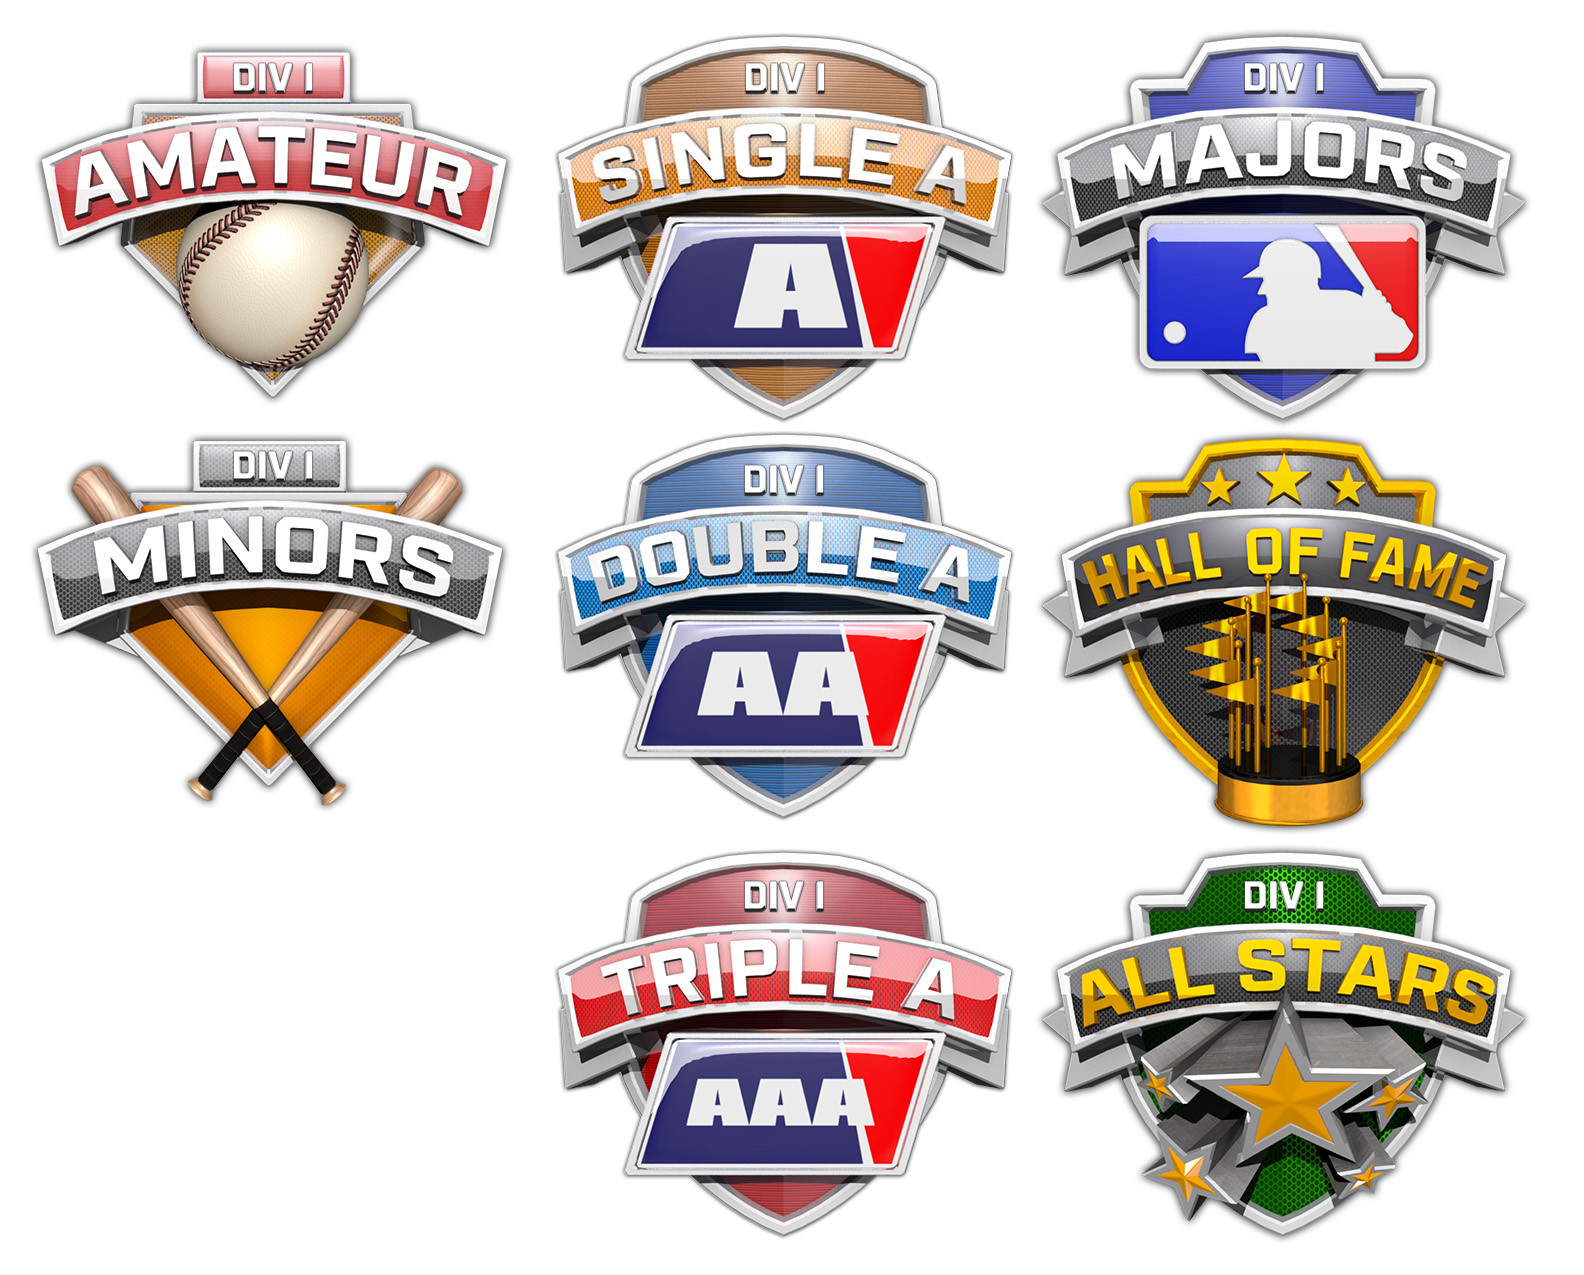 I designed, modeled, and rendered these Leagues badges in Maya